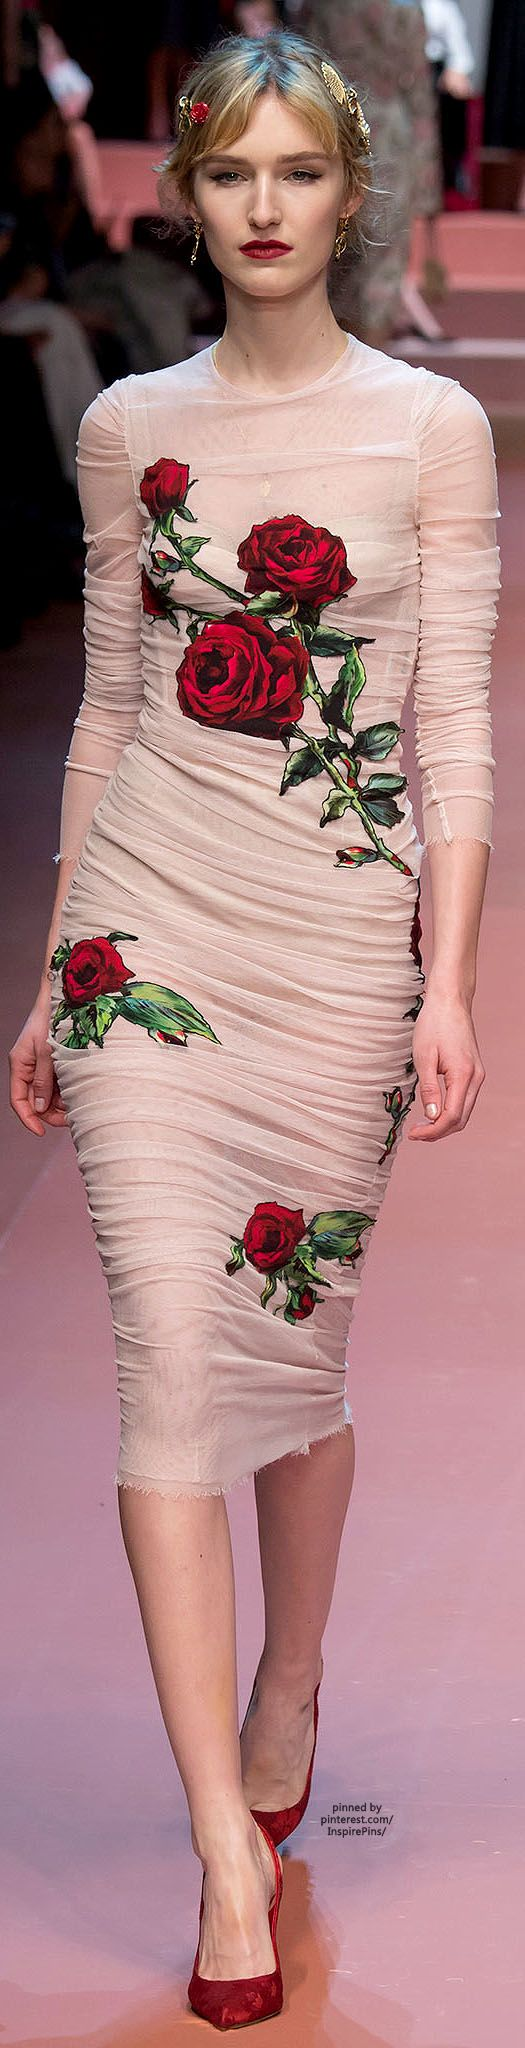 Dolce & Gabbana FW2015, love the large, graphic, tattoo-esque prints